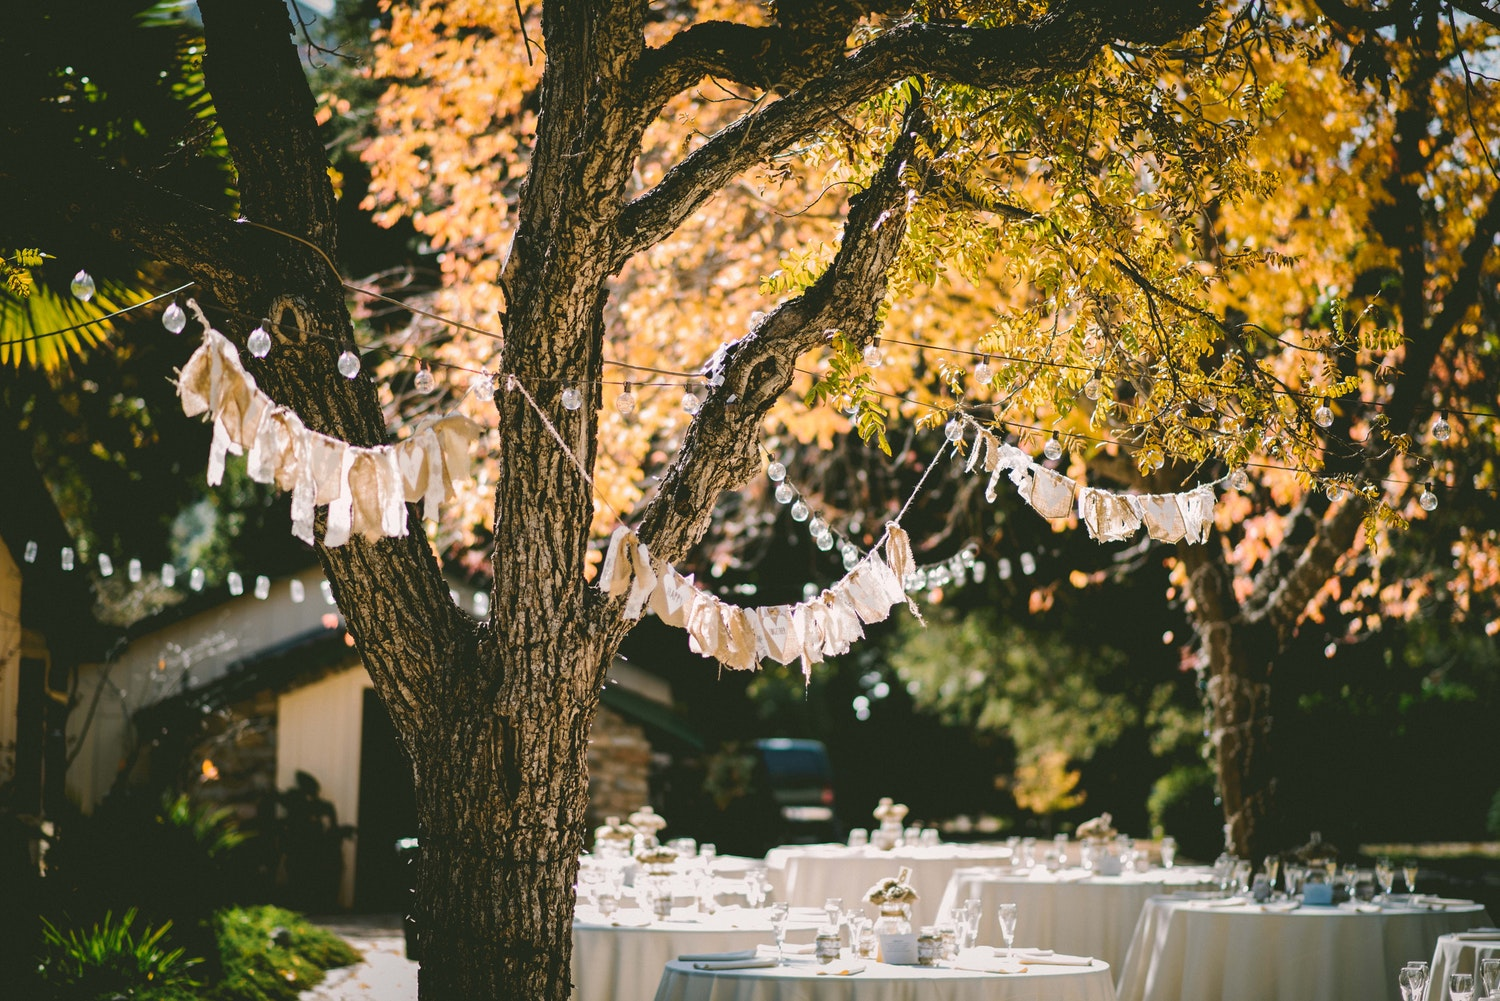 Backyard Wedding · Via Unsplash